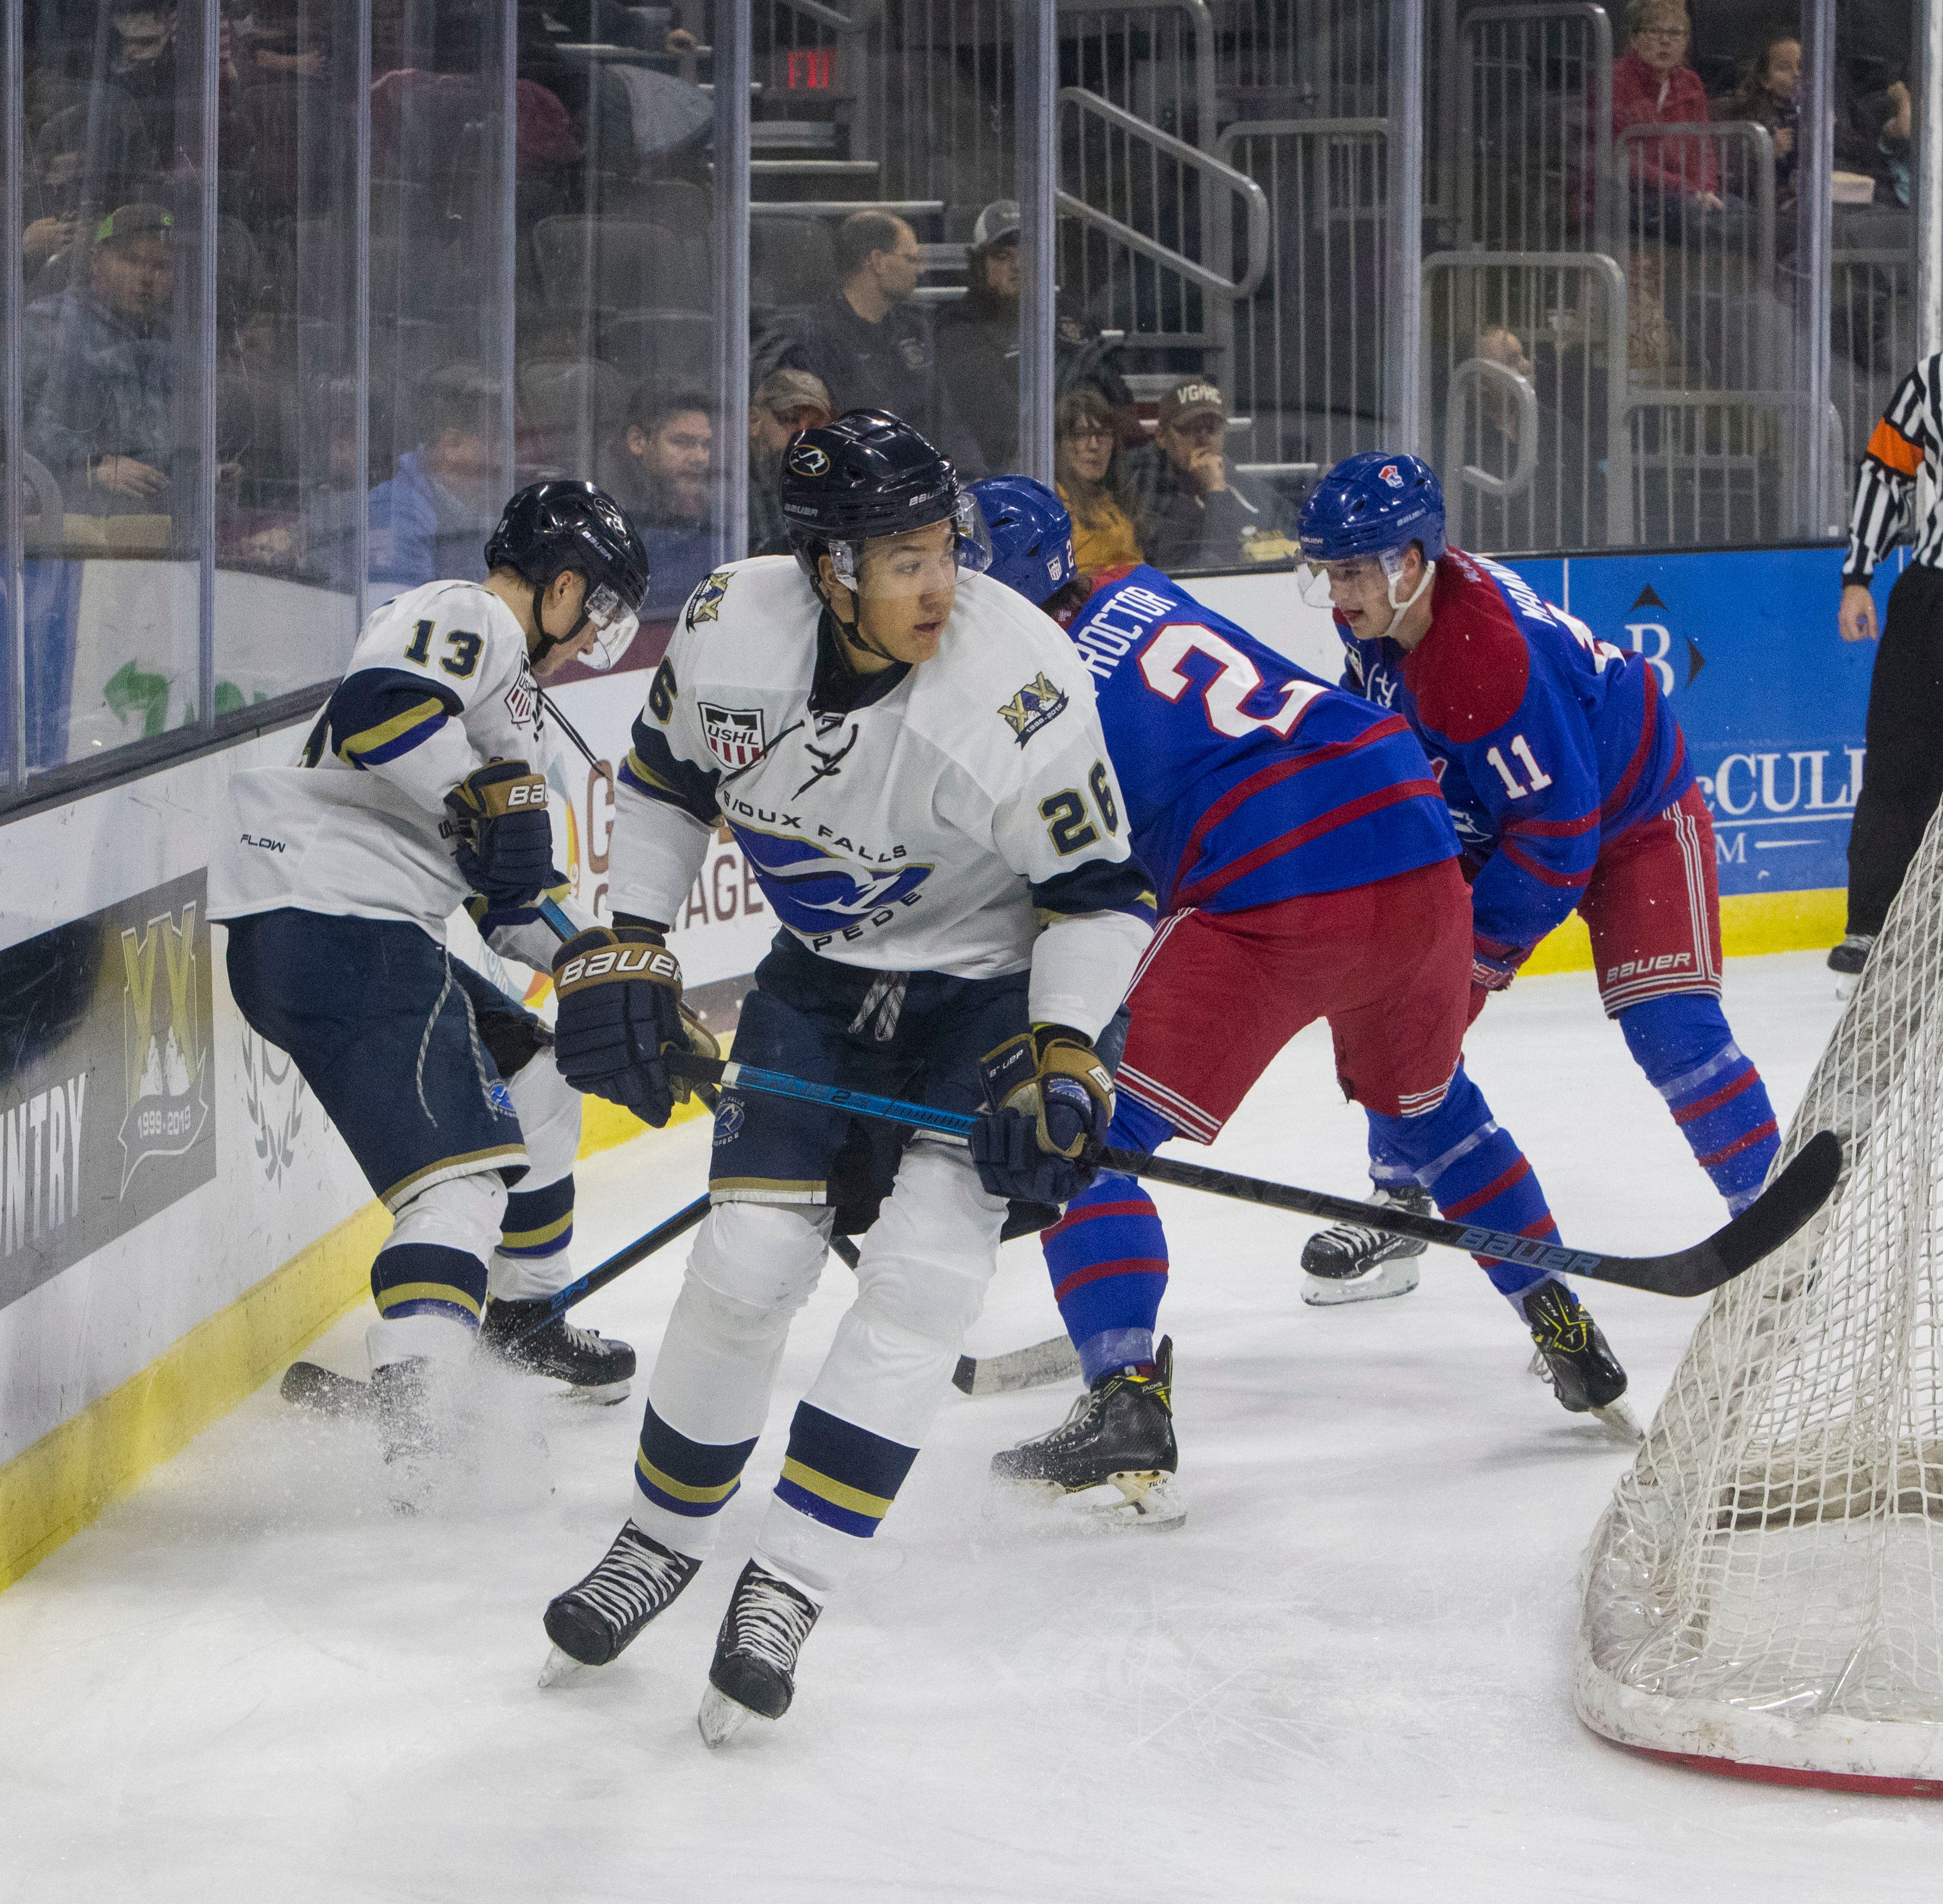 Clark Cup preview: Streaking Stampede face speedy Chicago Steel